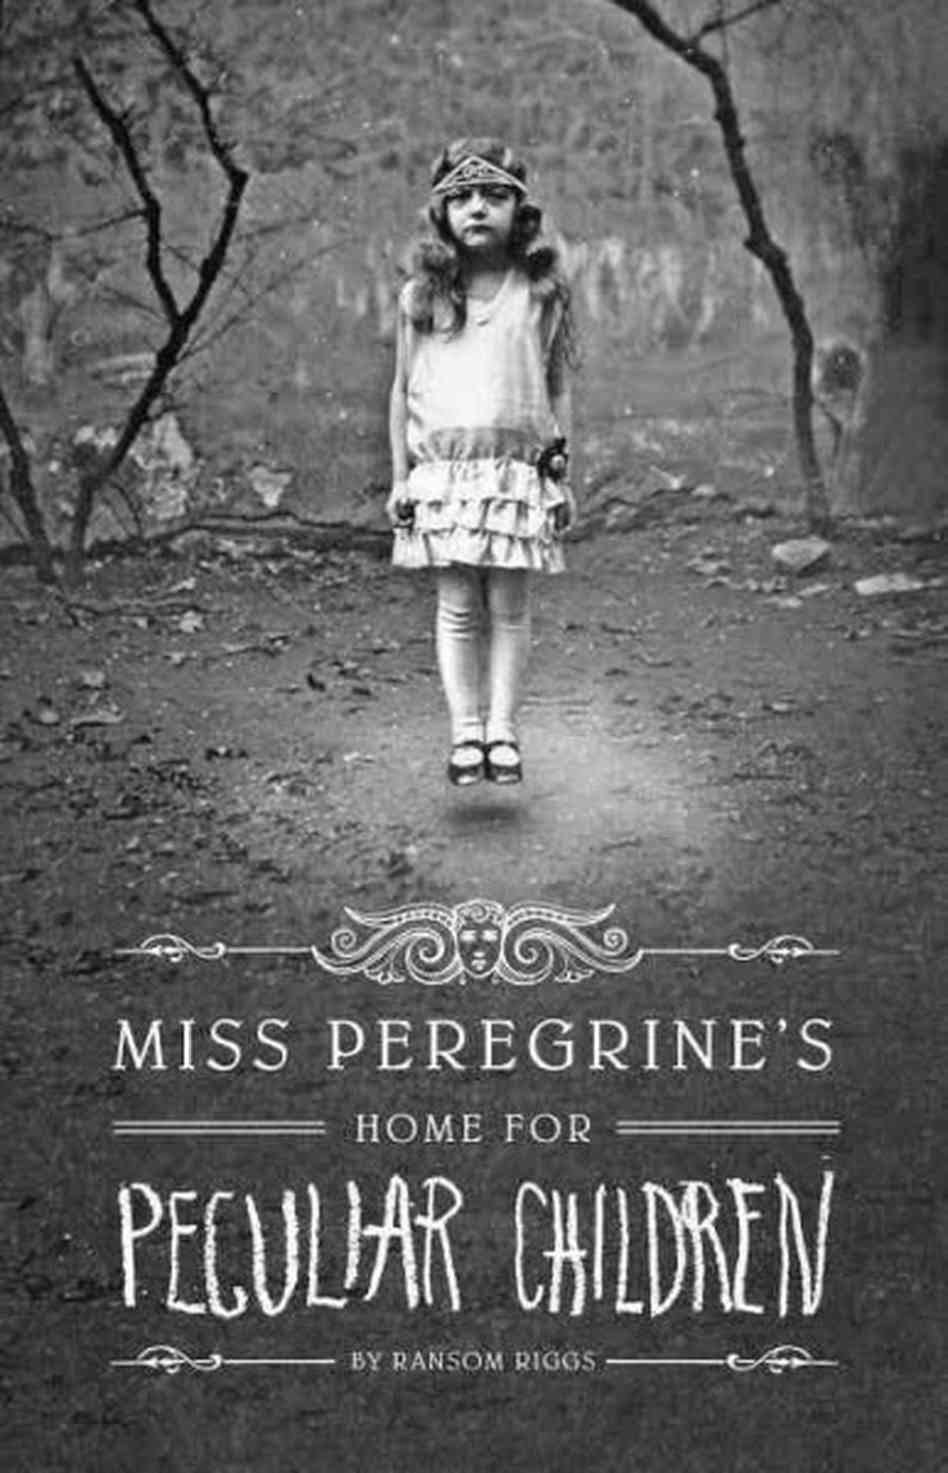 http://www.amazon.com/Miss-Peregrines-Home-Peculiar-Children/dp/1594746036